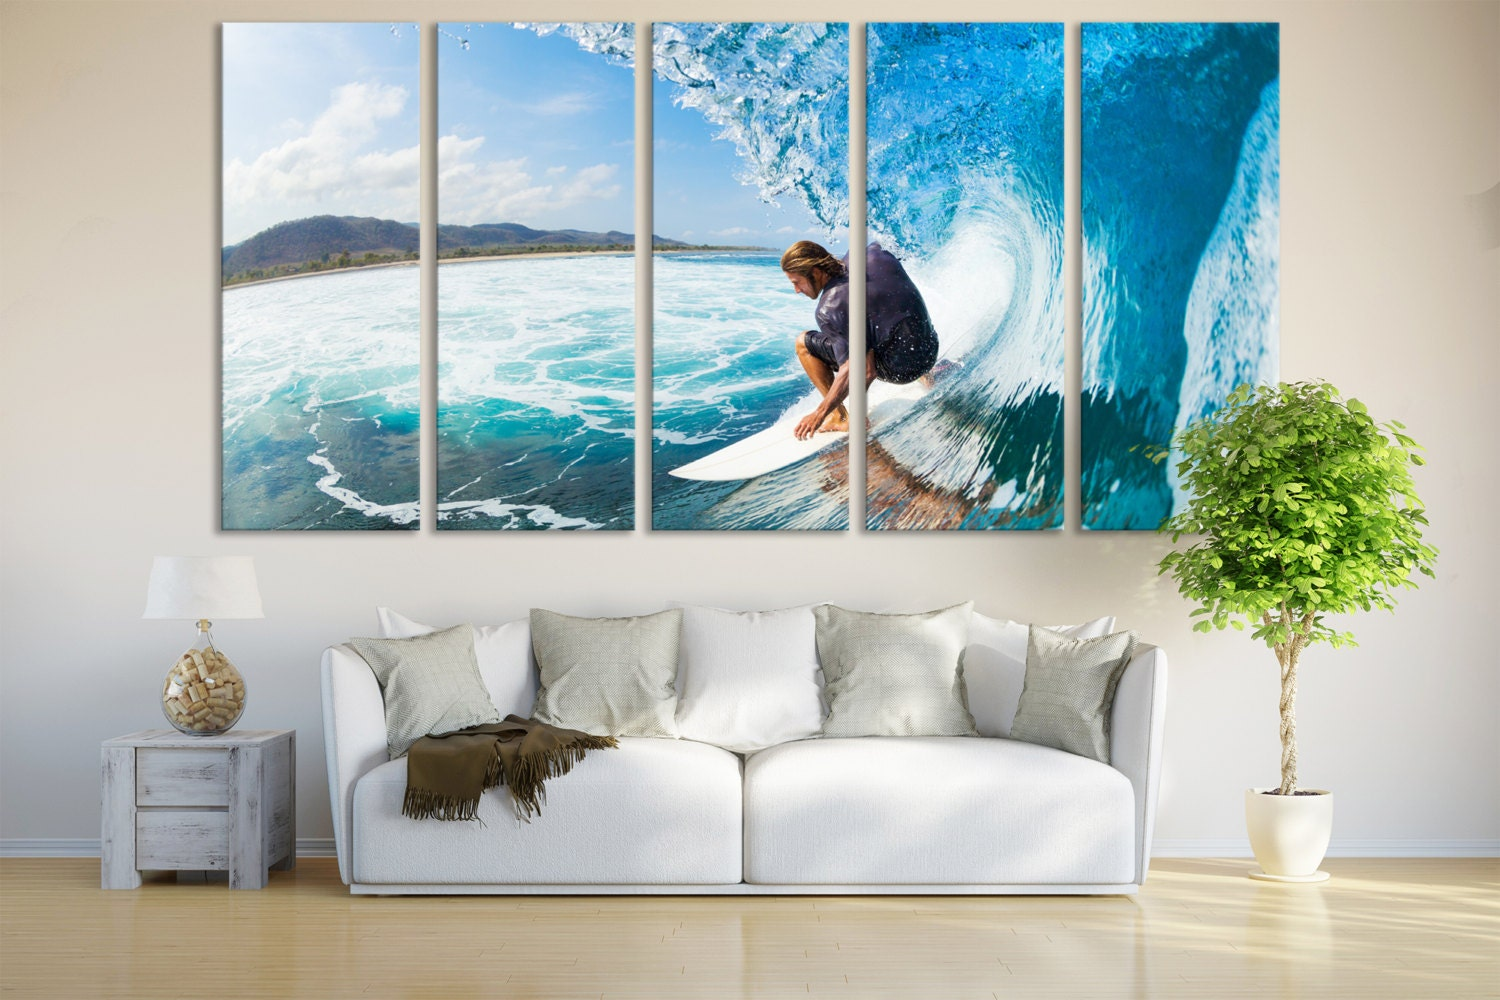 Surfing Wall Art Ocean Surfing Home Decor Photography